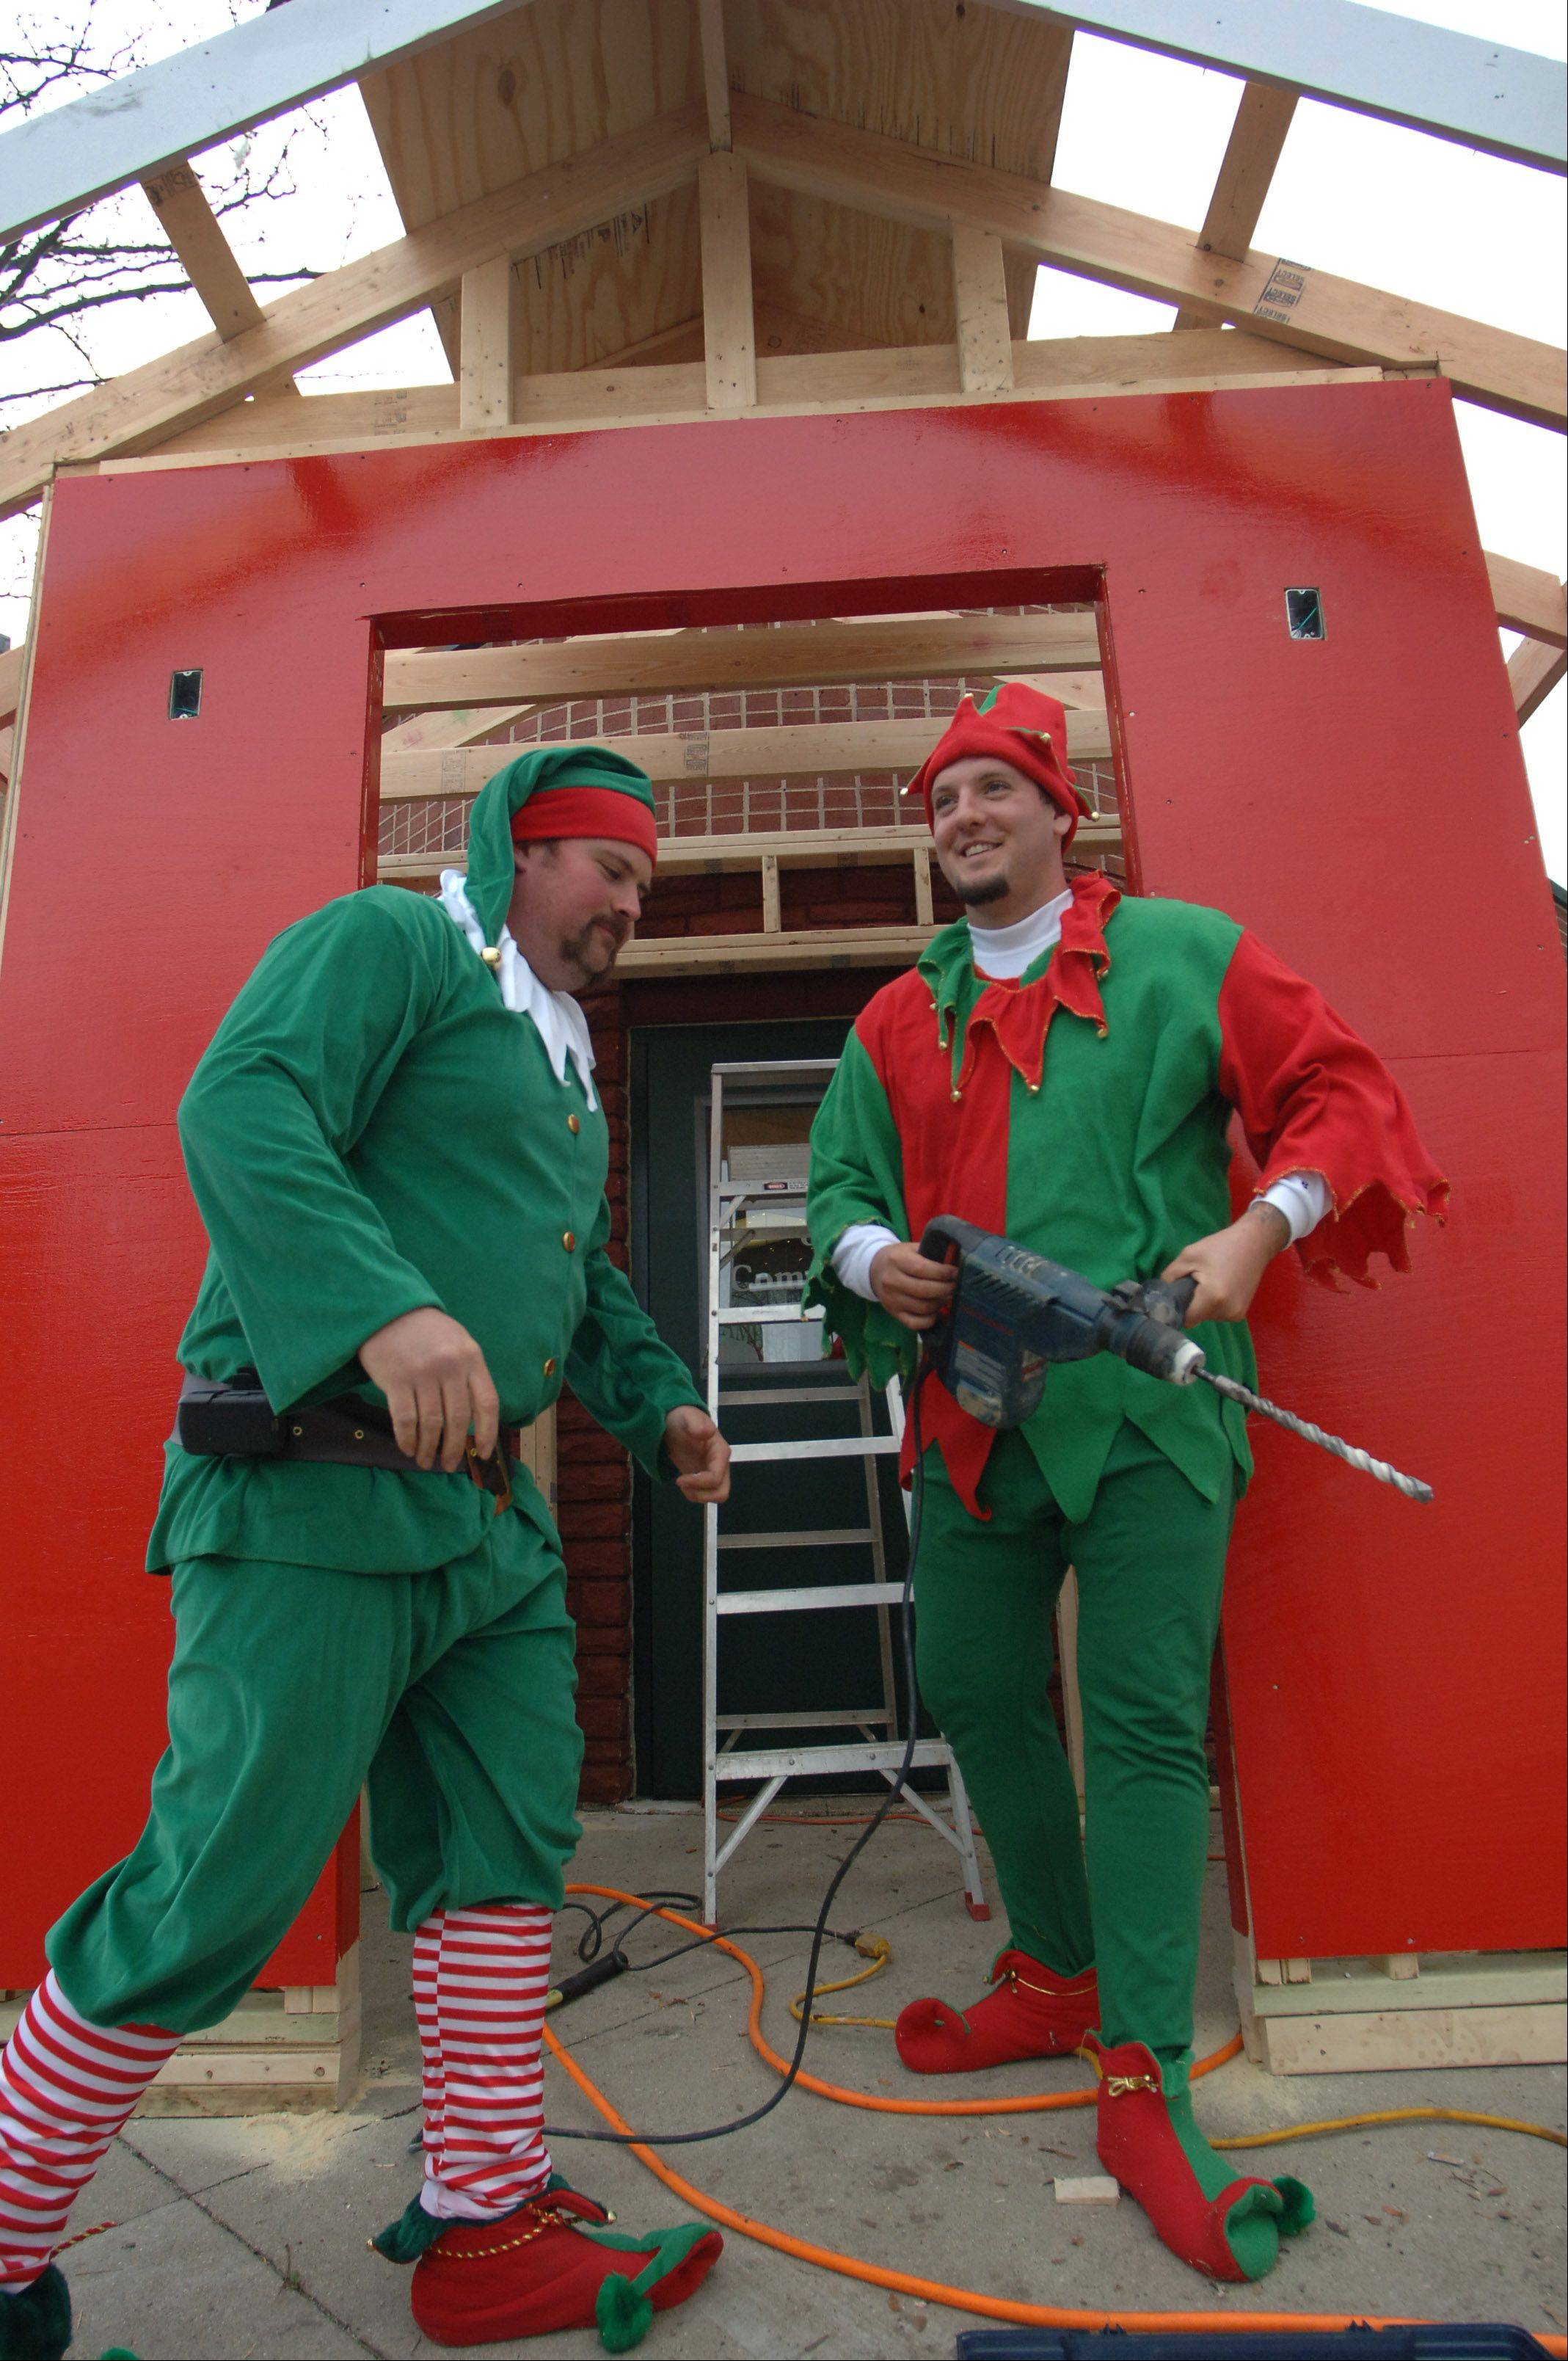 Antioch Public Works employees Tanner Dowell, left, and Scott Dewar are dressed as elves Wednesday while building an entrance to the new Santa�s Enchanted Village. Santa will be visiting with children starting Nov. 23 just inside the chamber of commerce entrance of village hall.